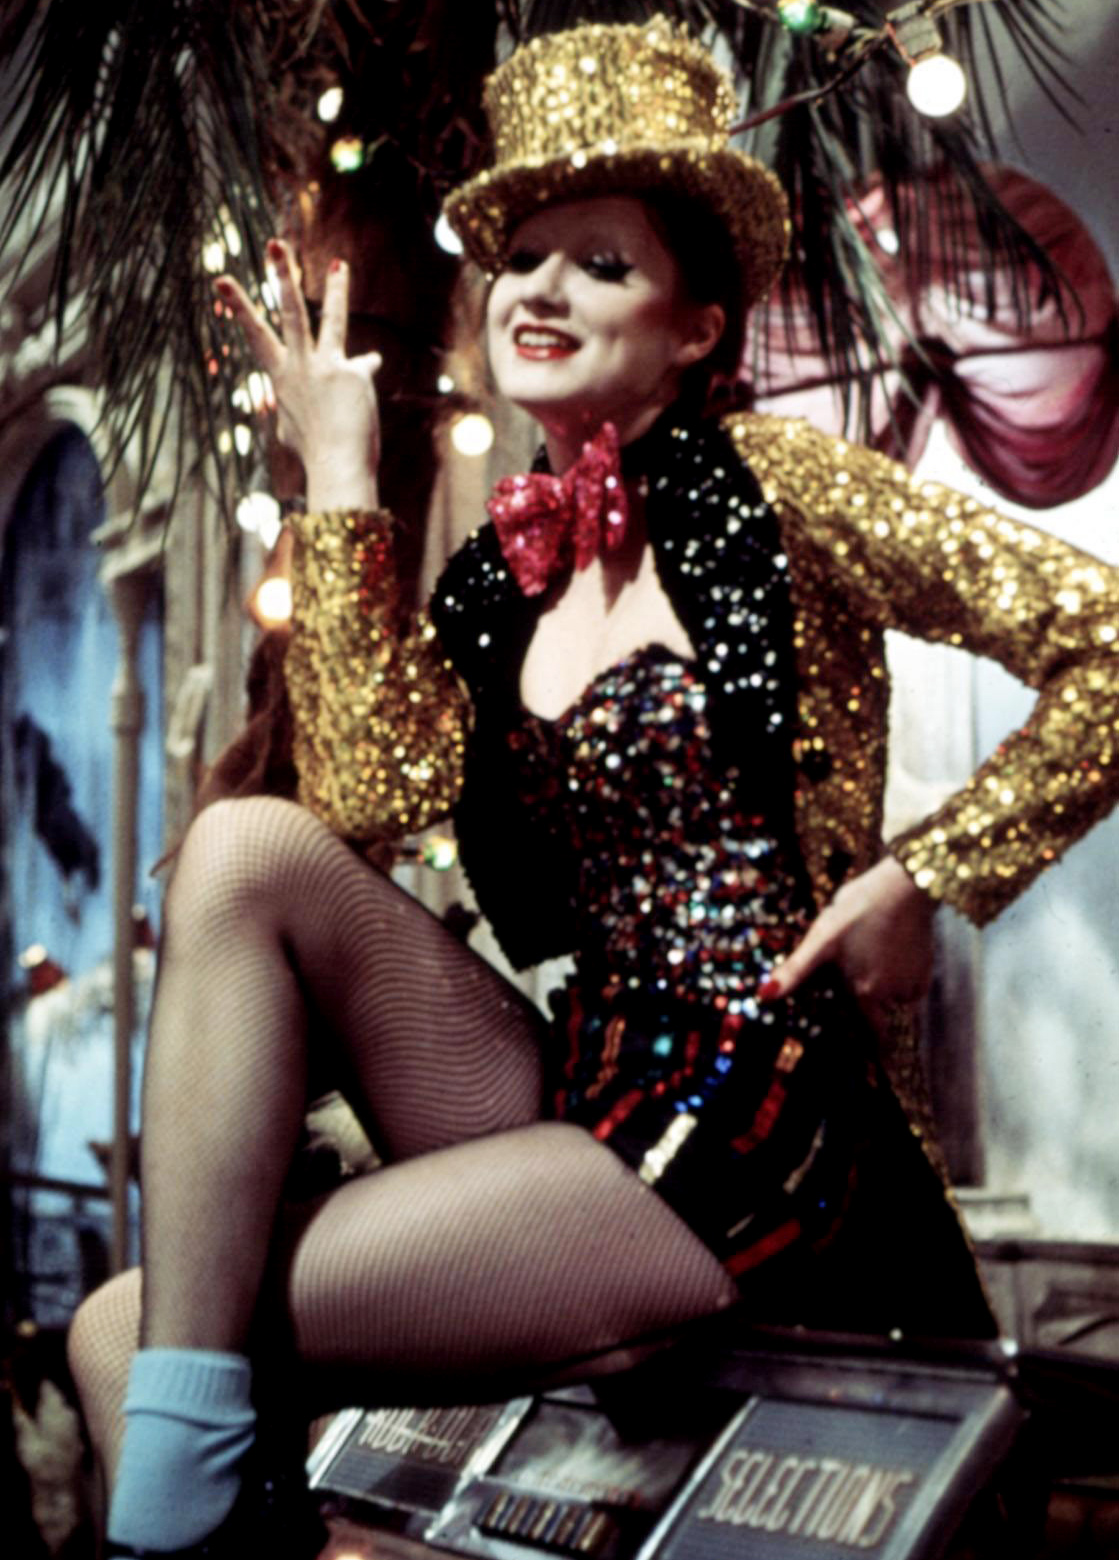 Halloween Costume Idea The Rocky Horror Picture Show | InStyle.com